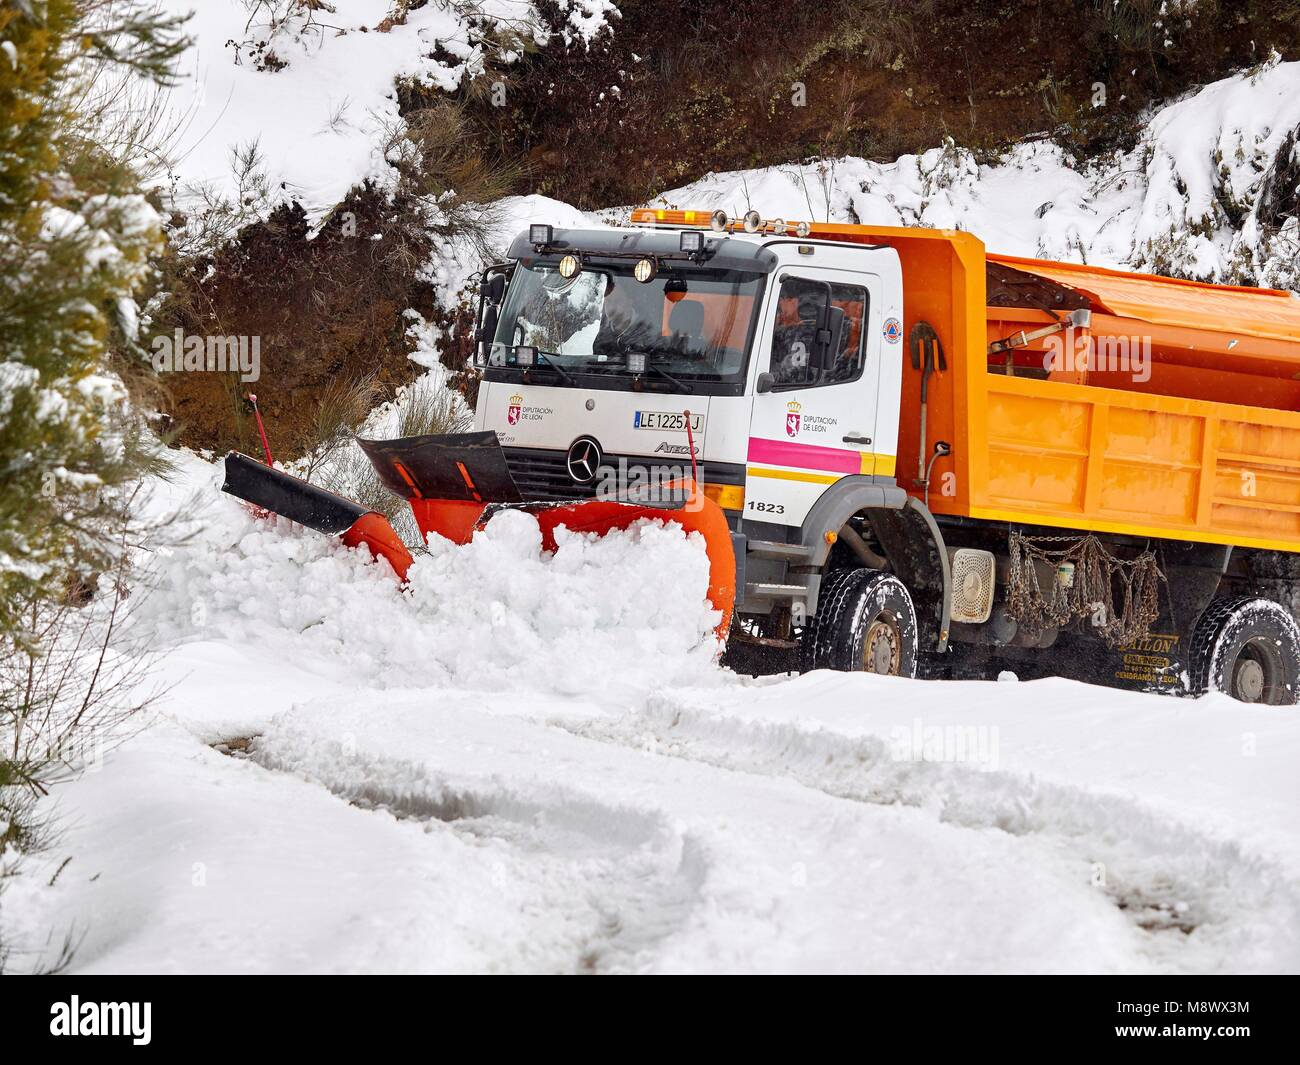 A snowplough clears the snow from the road in O Cebreiro, Lugo, Spain, 20 March 2018. A cold front has arrived to Stock Photo